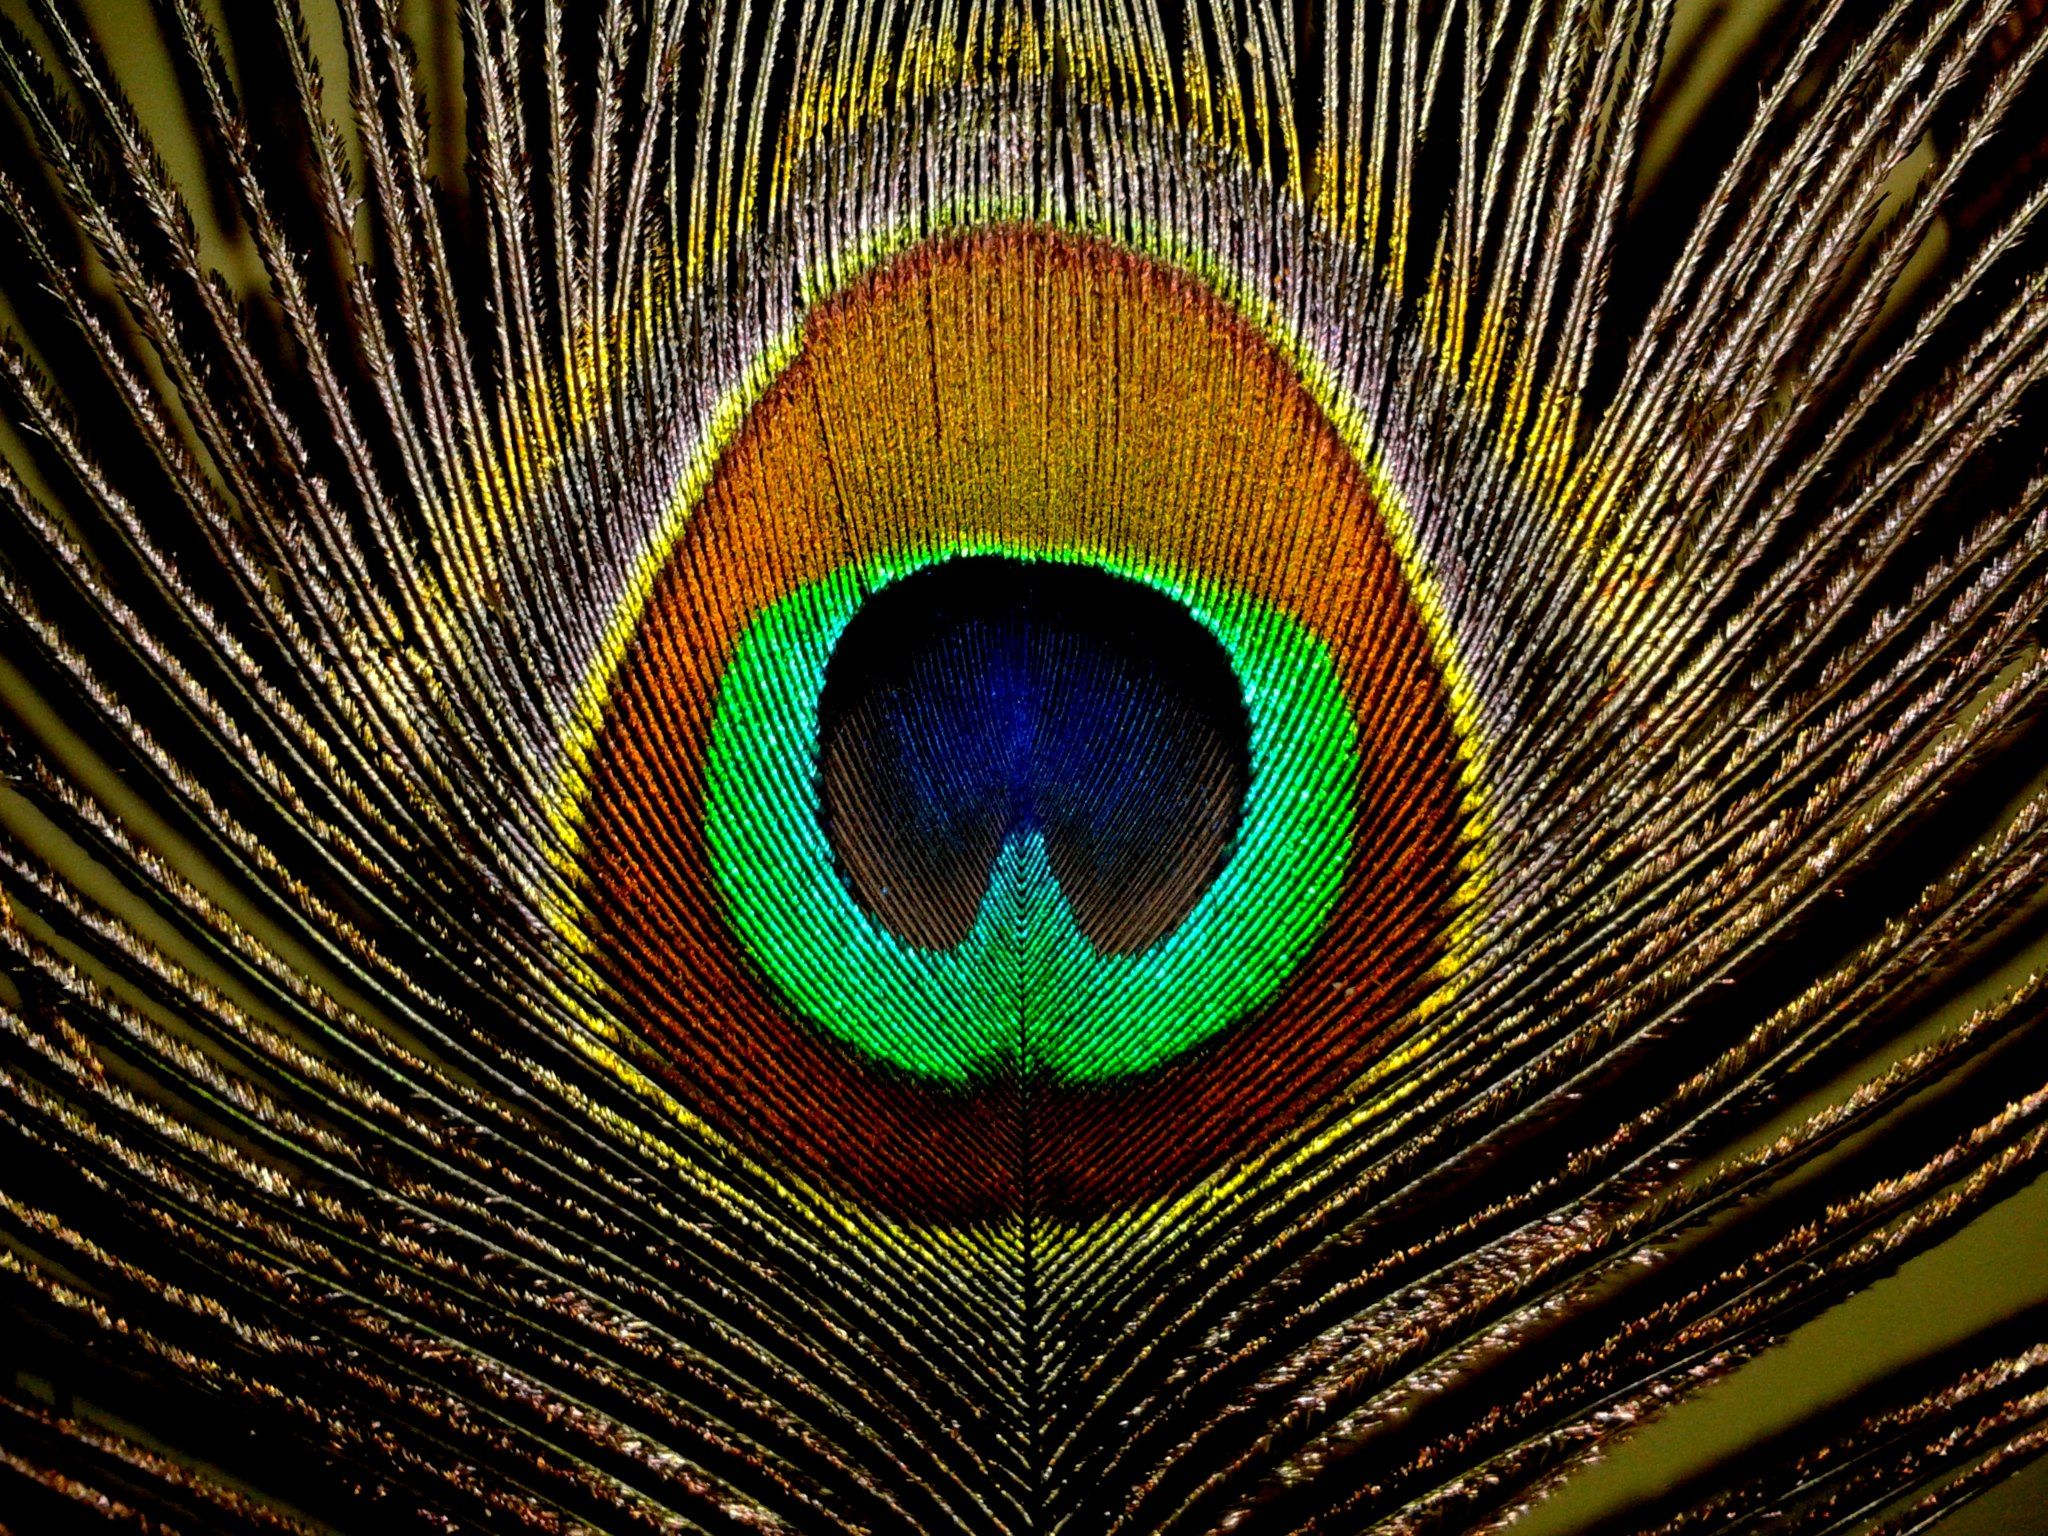 Peacock Feathers Hd Wallpapers Peacock Feathers Backgroundsnew Feather Wallpaper Peacock Feather Drawing